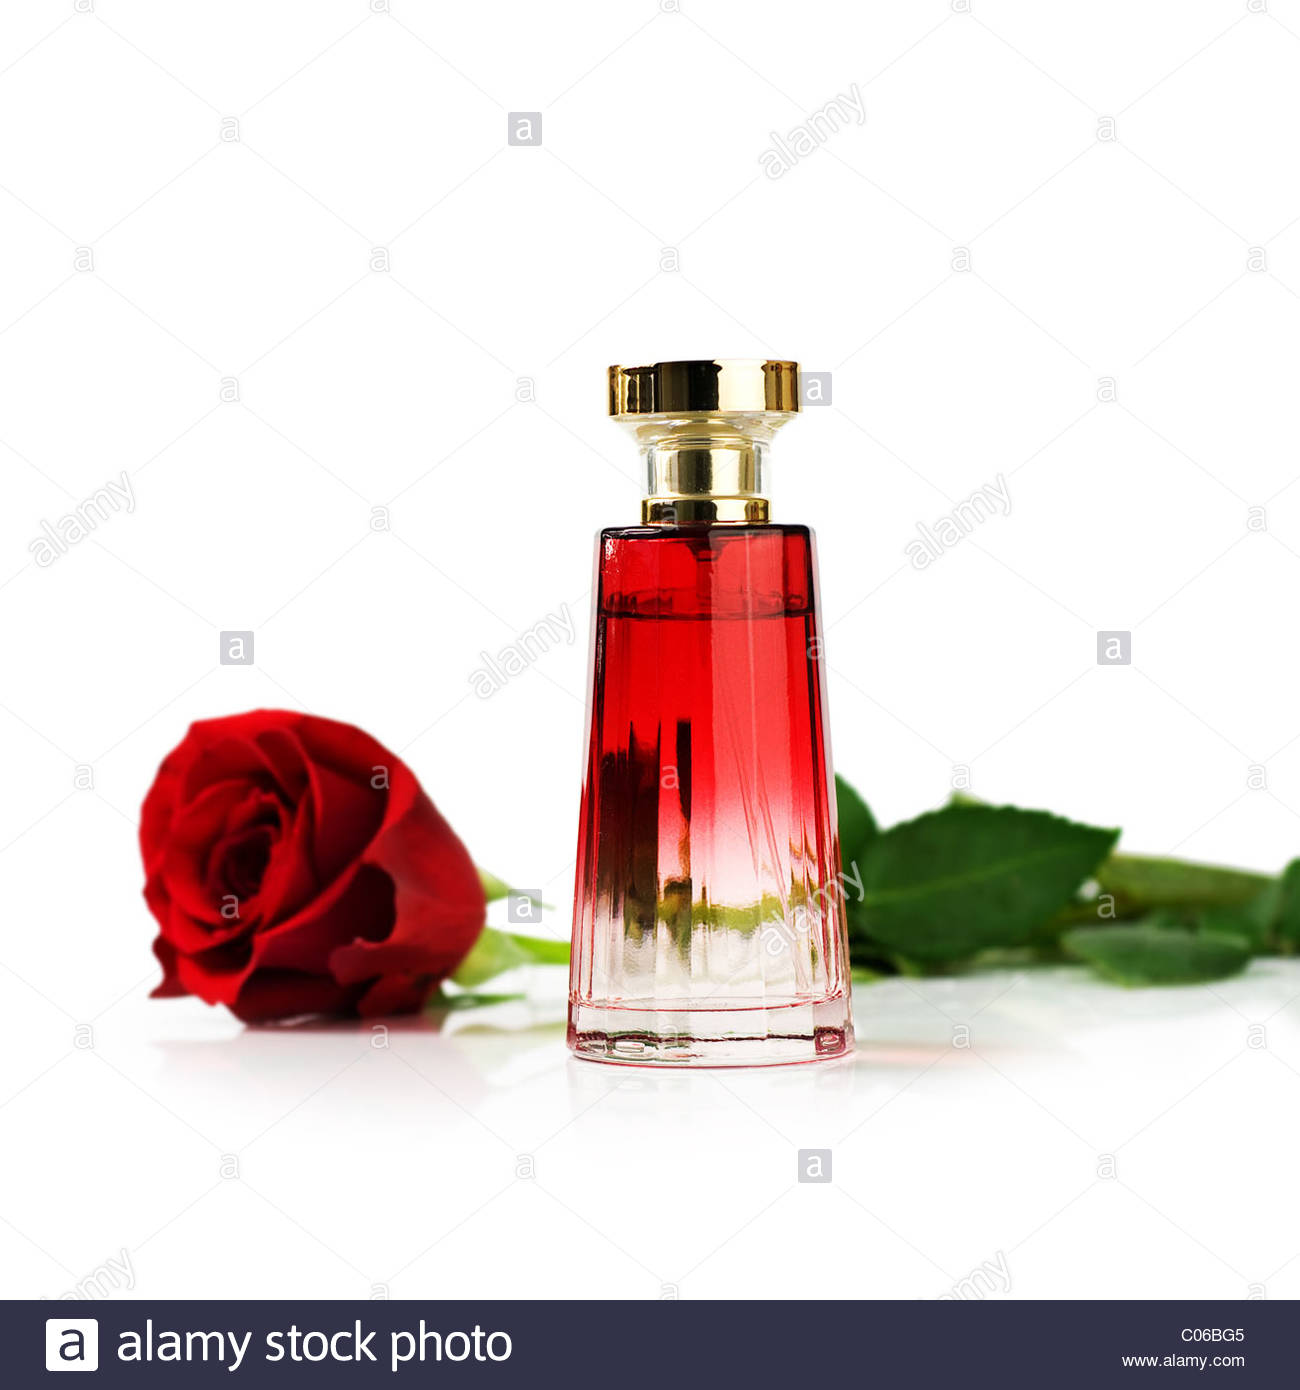 Red rose and Perfume bottle - Stock Image